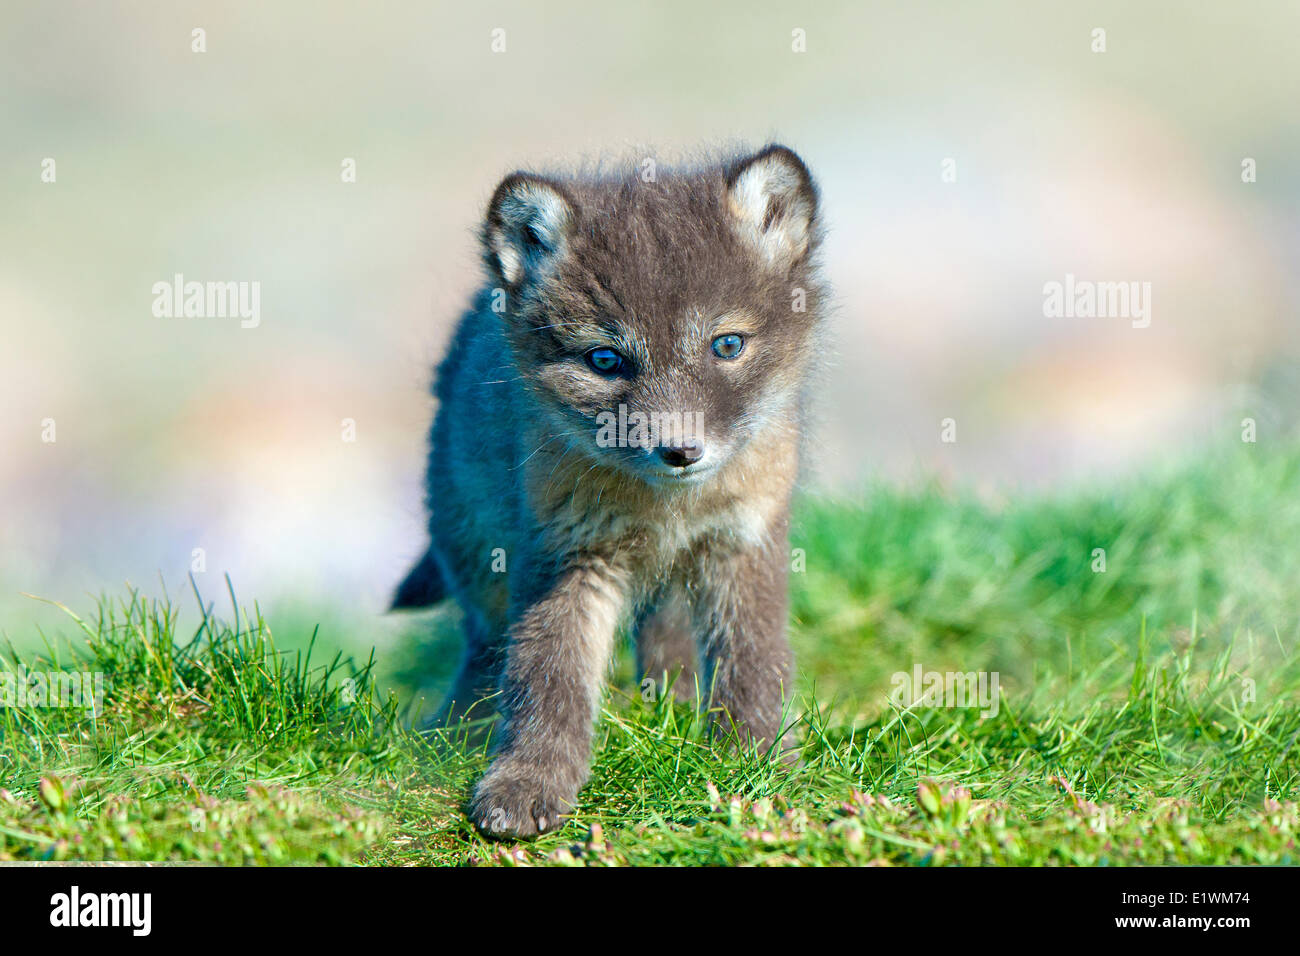 Arctic fox pup (Alipex lagopus) at the mouth of its natal den, Victoria Island, Nunavut, Arctic Canada - Stock Image